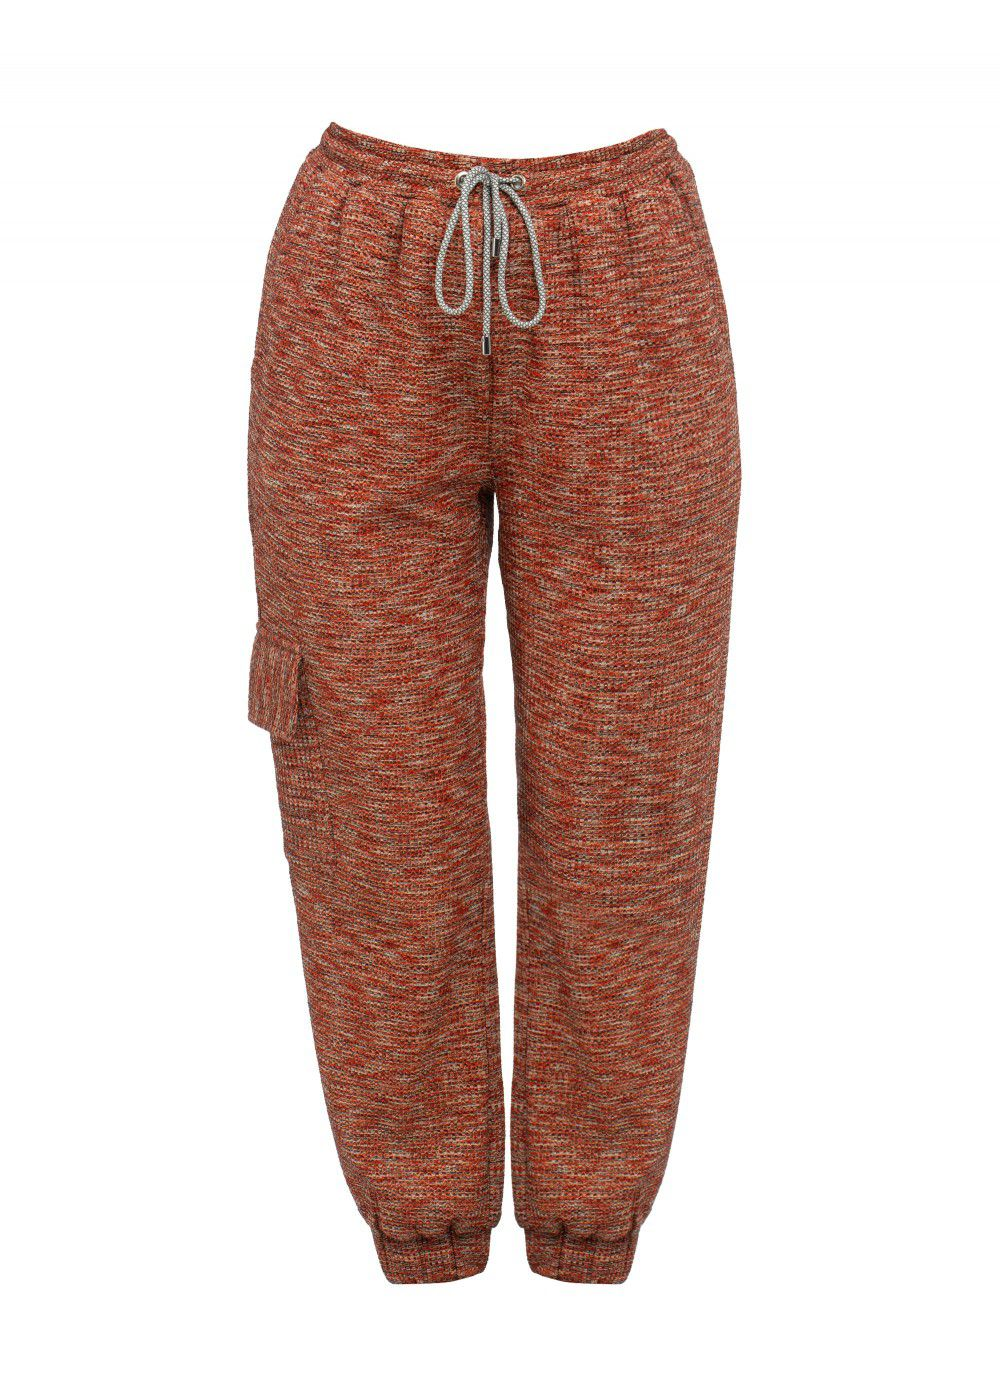 Dhruv Kapoor Knit Trousers